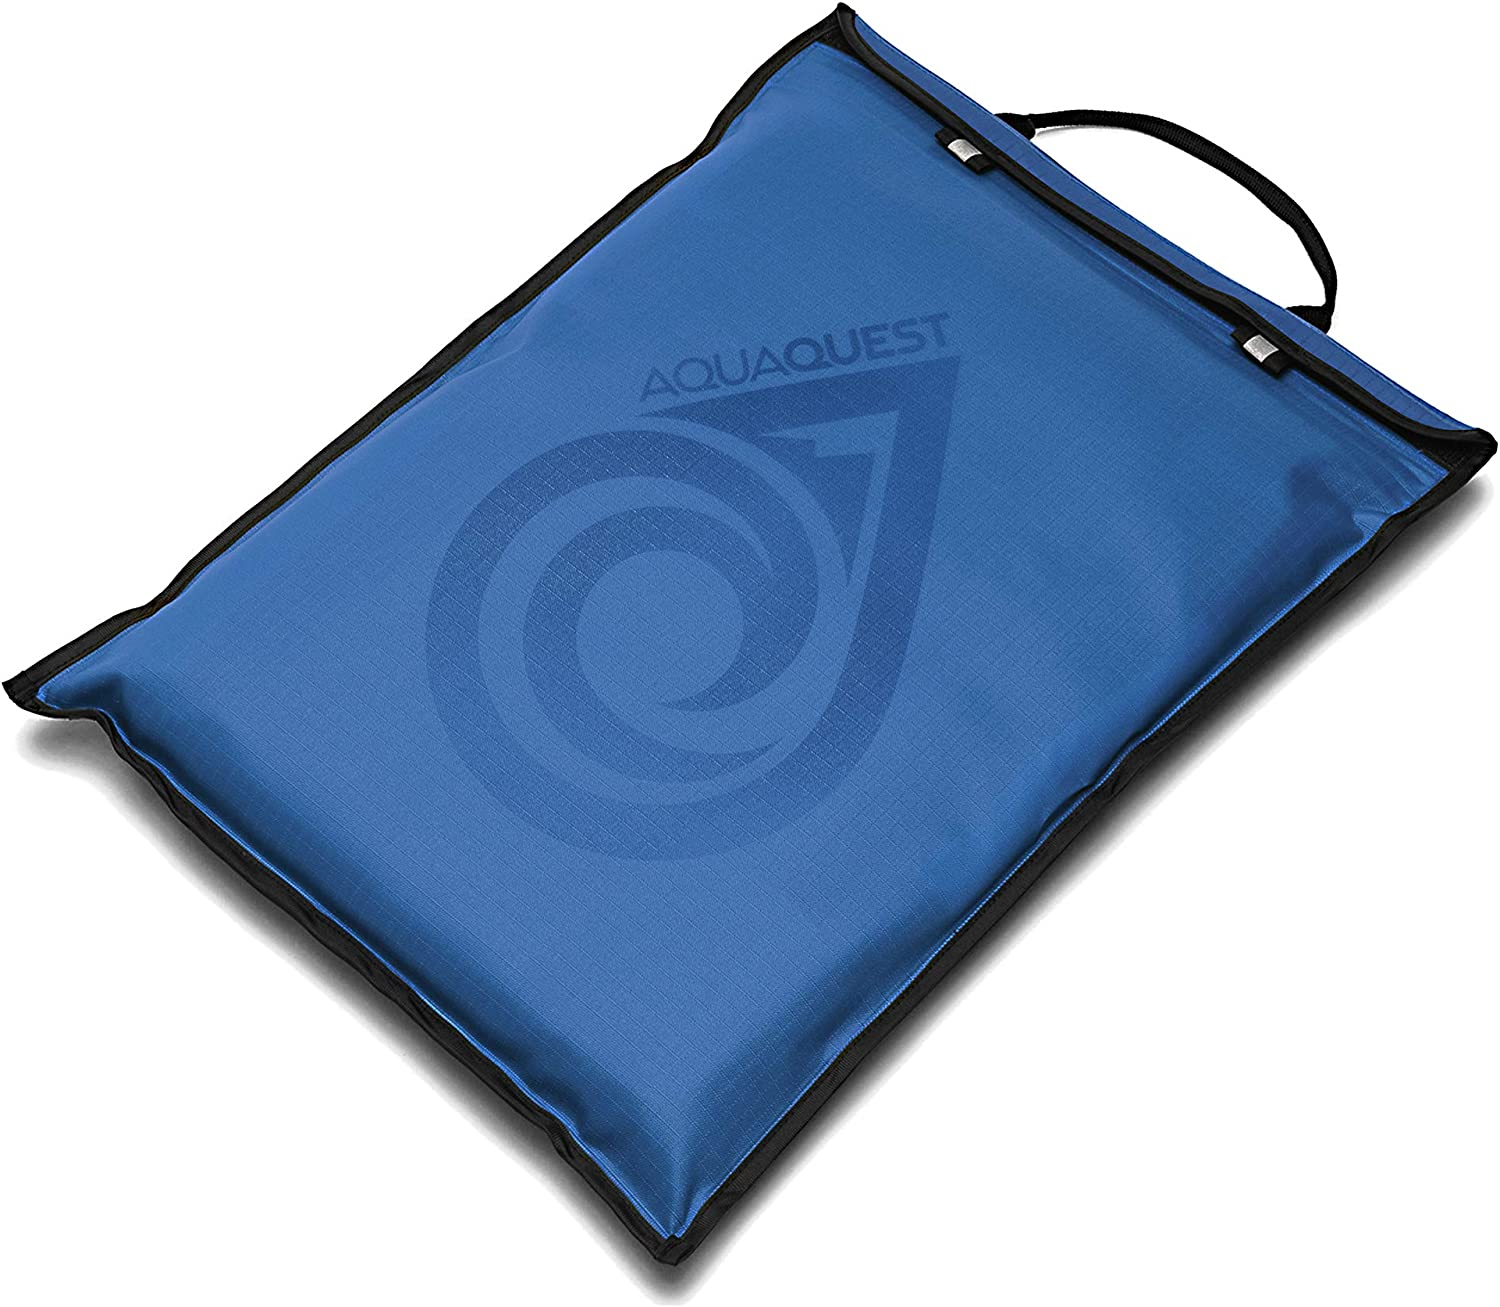 Aqua Quest Storm Laptop Sleeve - 100% Waterproof, Lightweight, Durable, Padded Case - Protective Computer Pouch Cover Bag - 13